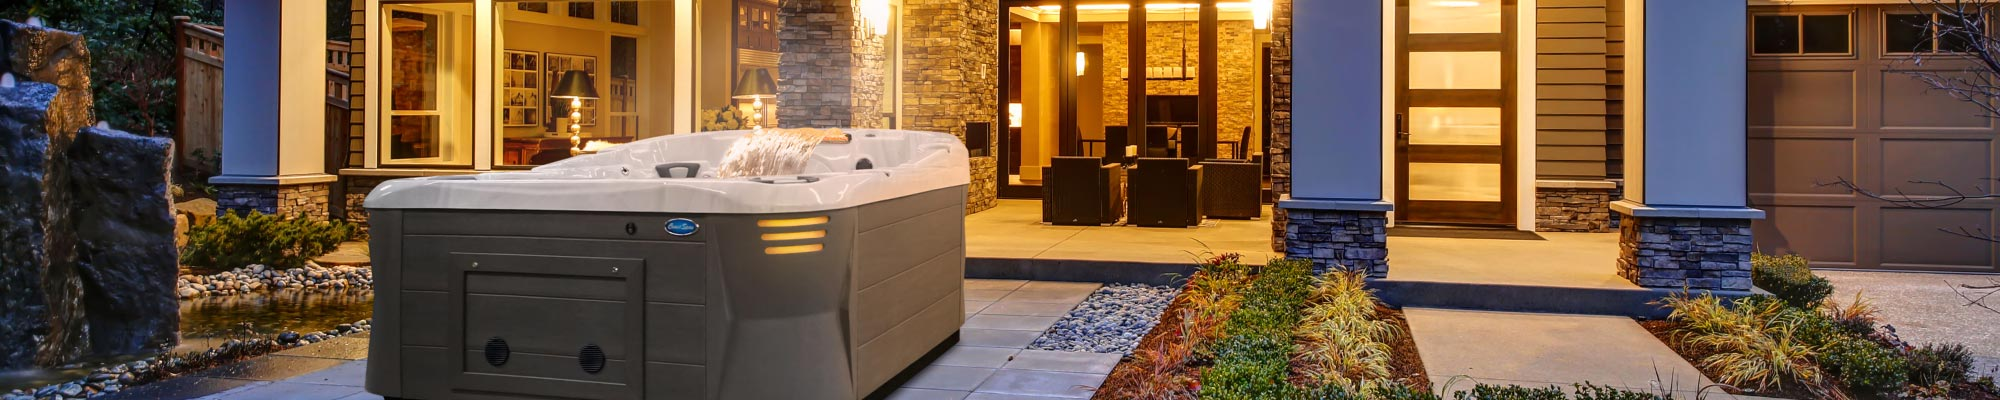 Coast Spas Patented Infinity Edge Hot Tub Compared to Standard Hot Tub